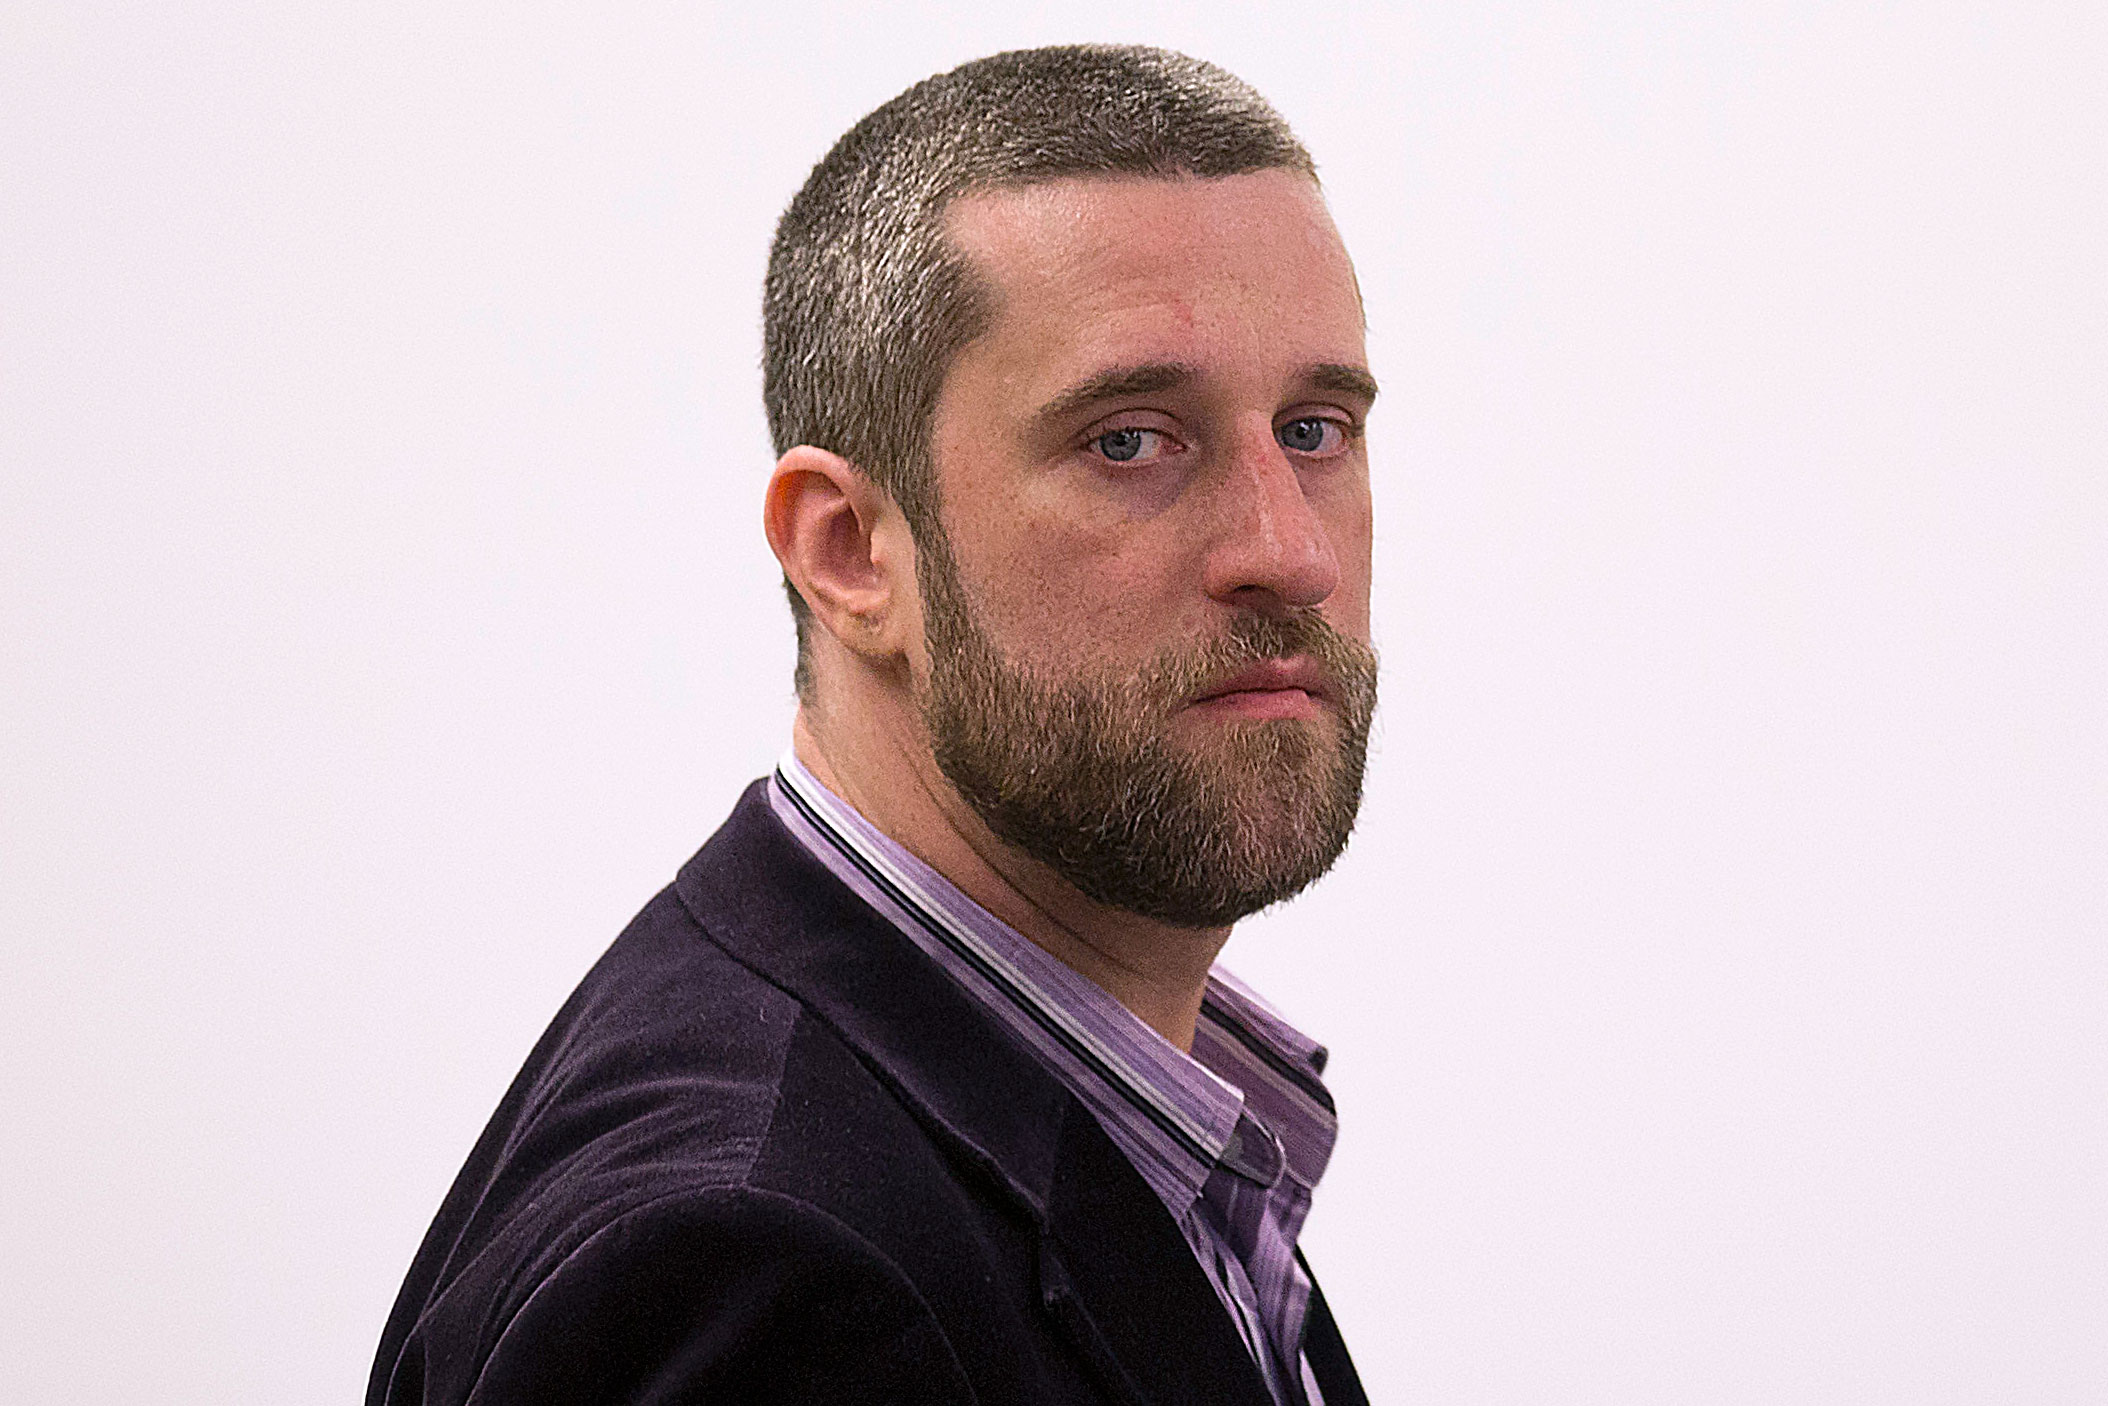 Dustin Diamond owes $94K in back taxes | Page Six